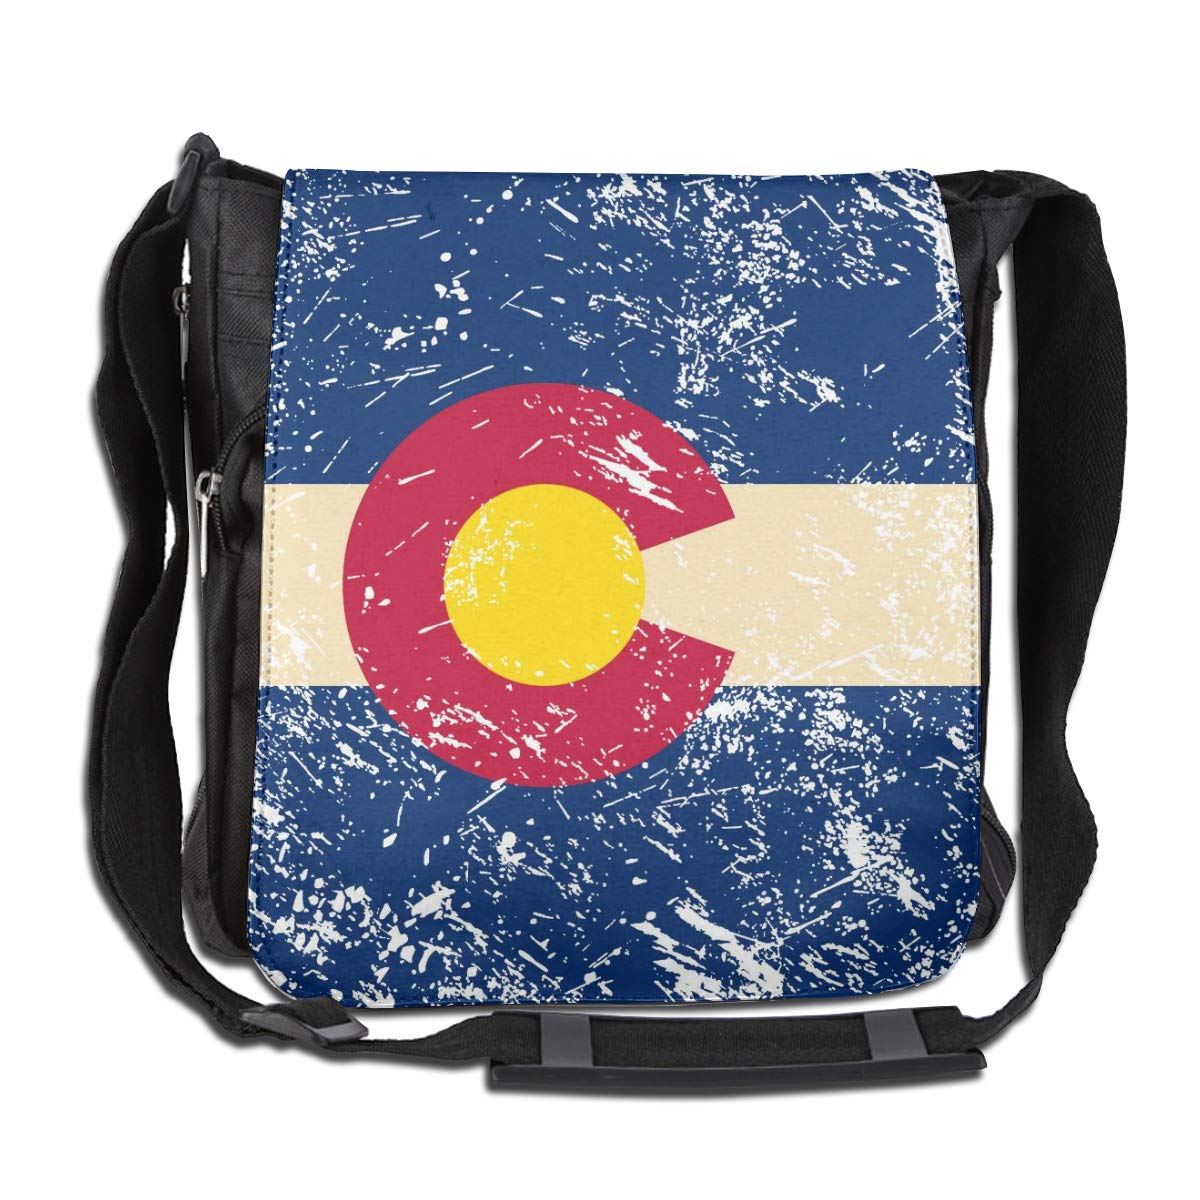 Colorado State Flag Crossbody Shoulder Bag Adjustable Casual Daily Messenger Bag Satchel School Bag For Women And Men